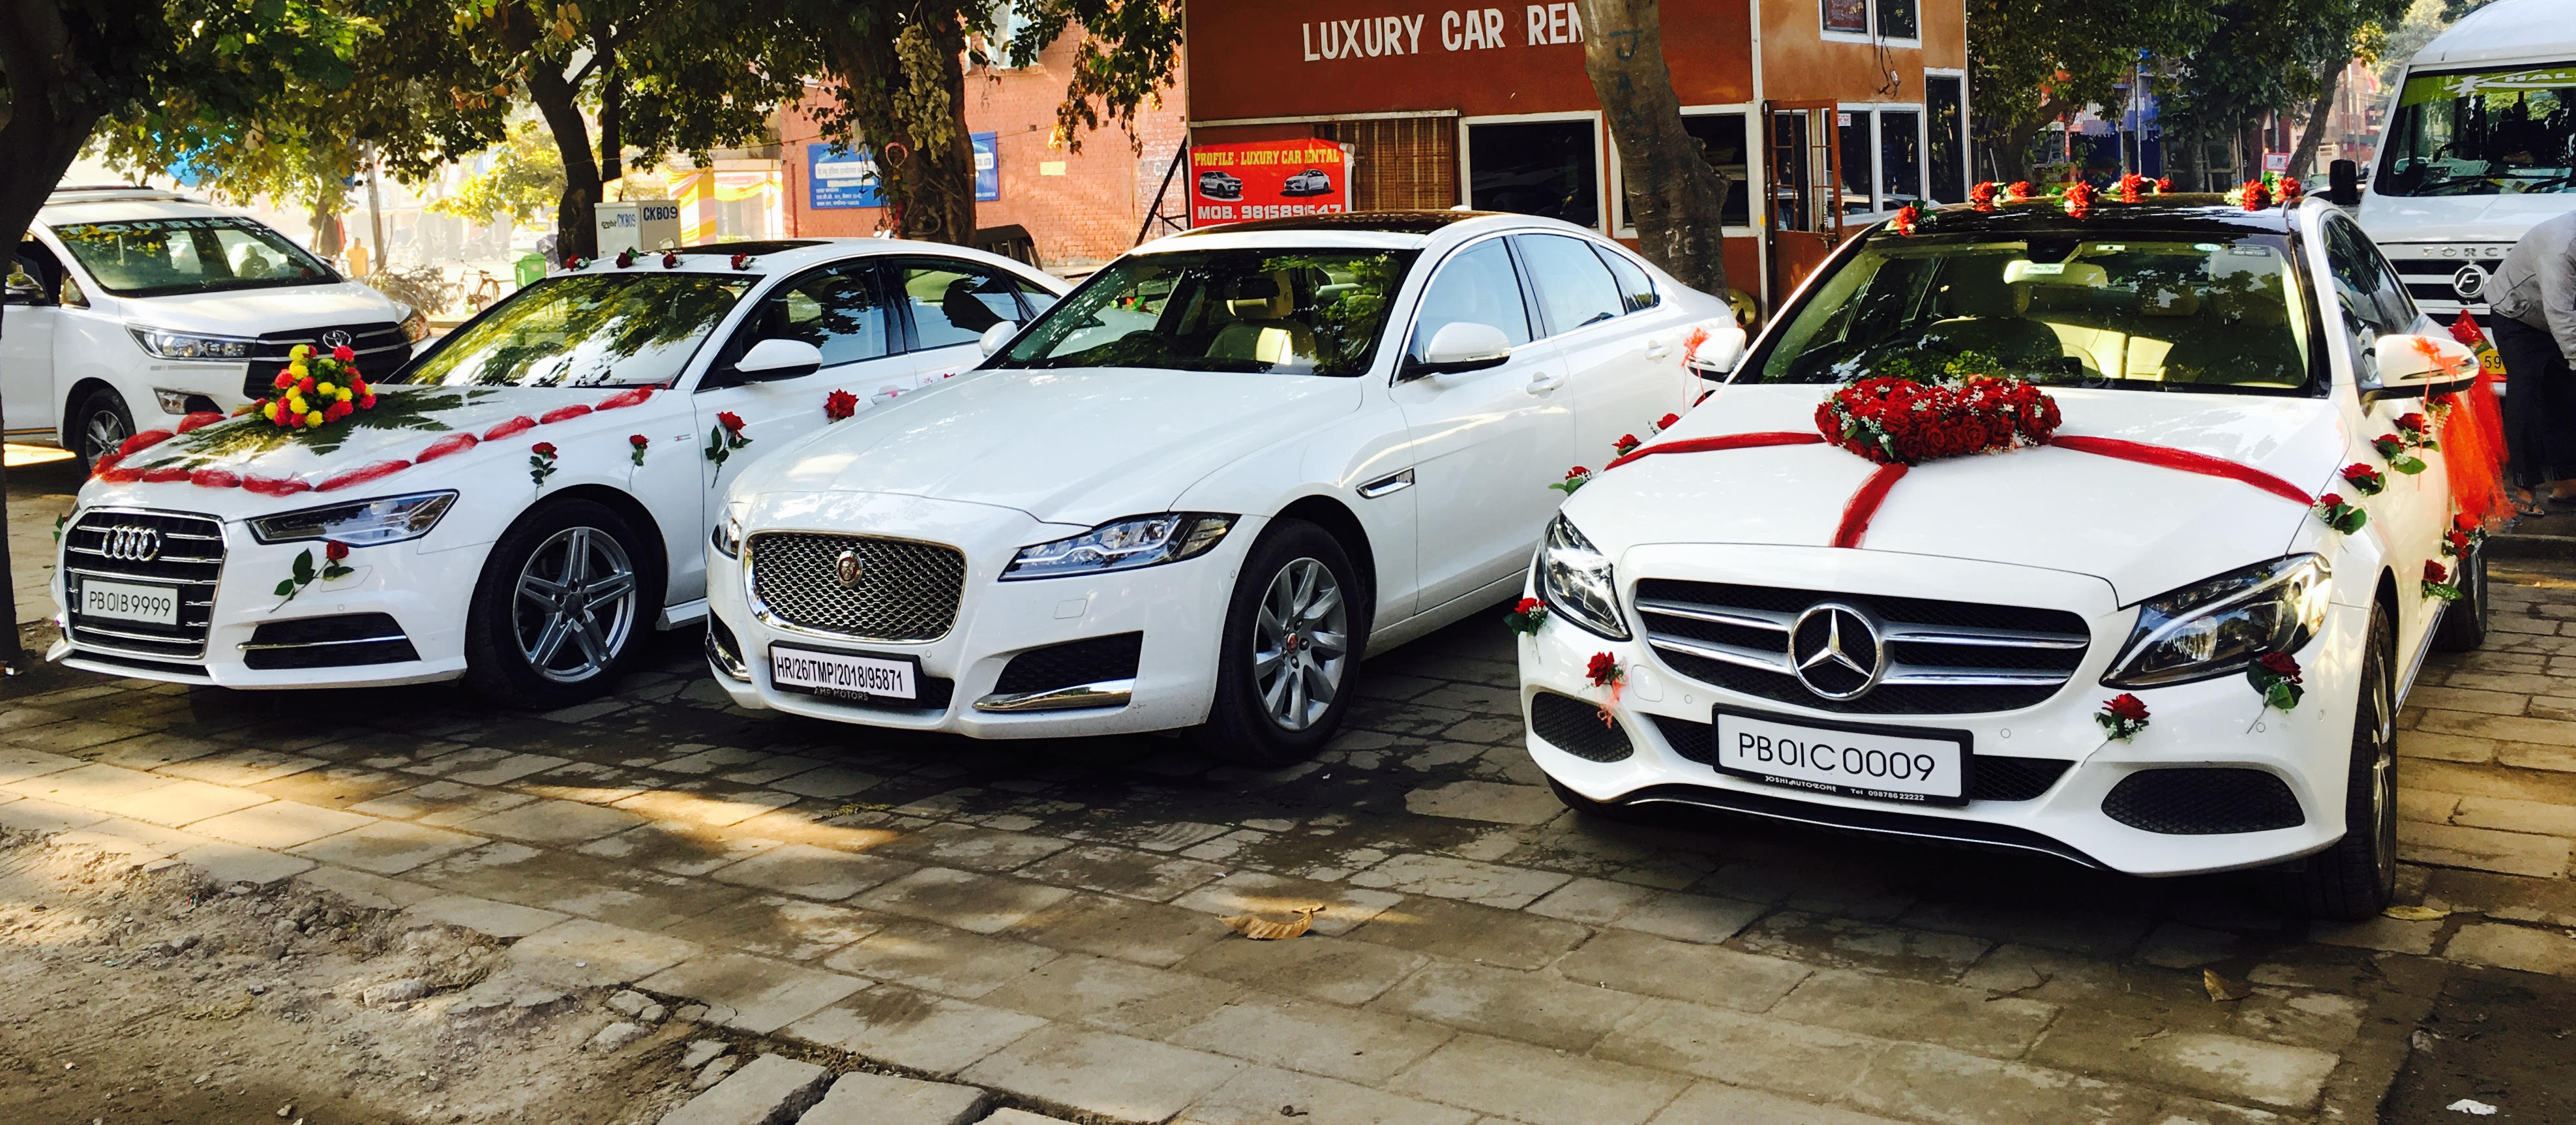 Wedding Car Rental Company in Chandigarh